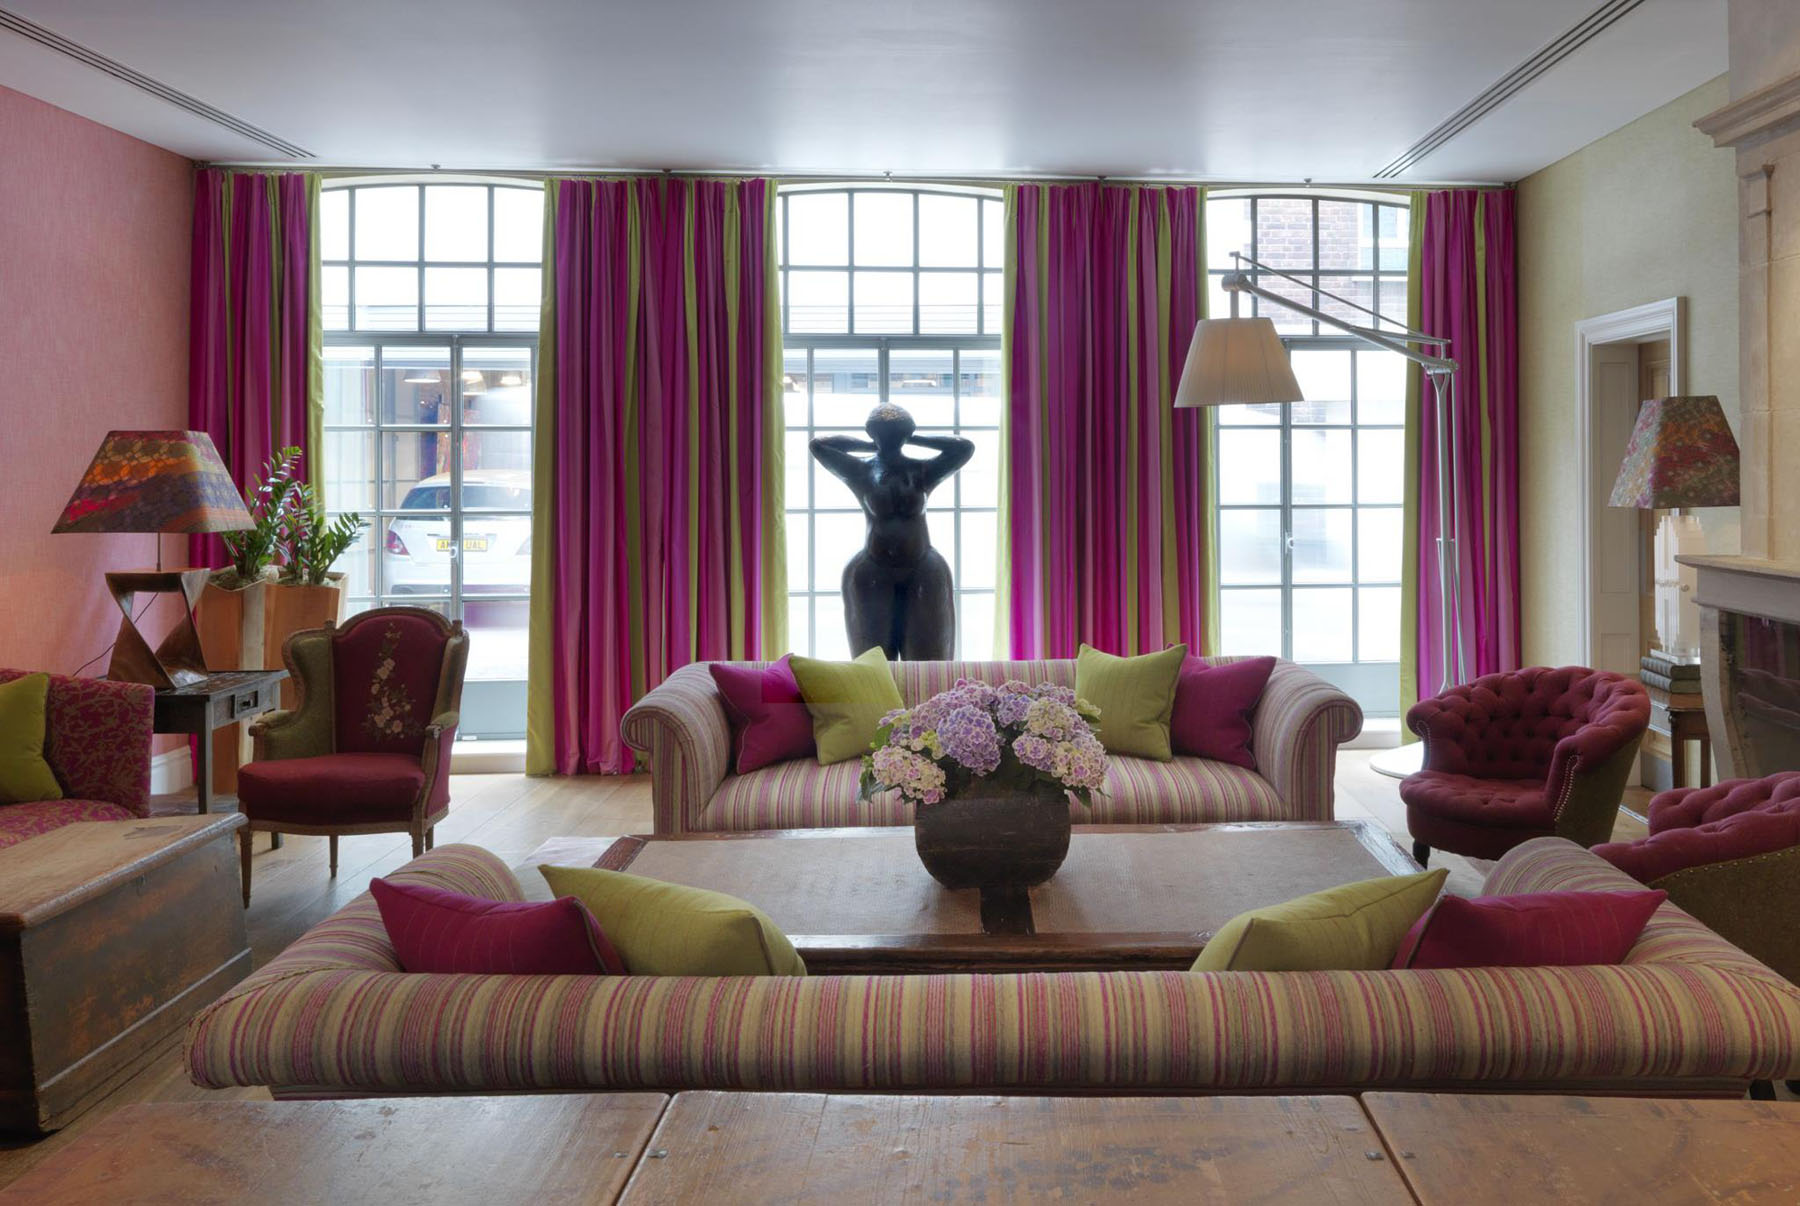 Trendy soho hotel london interiors idesignarch for Hotel design london